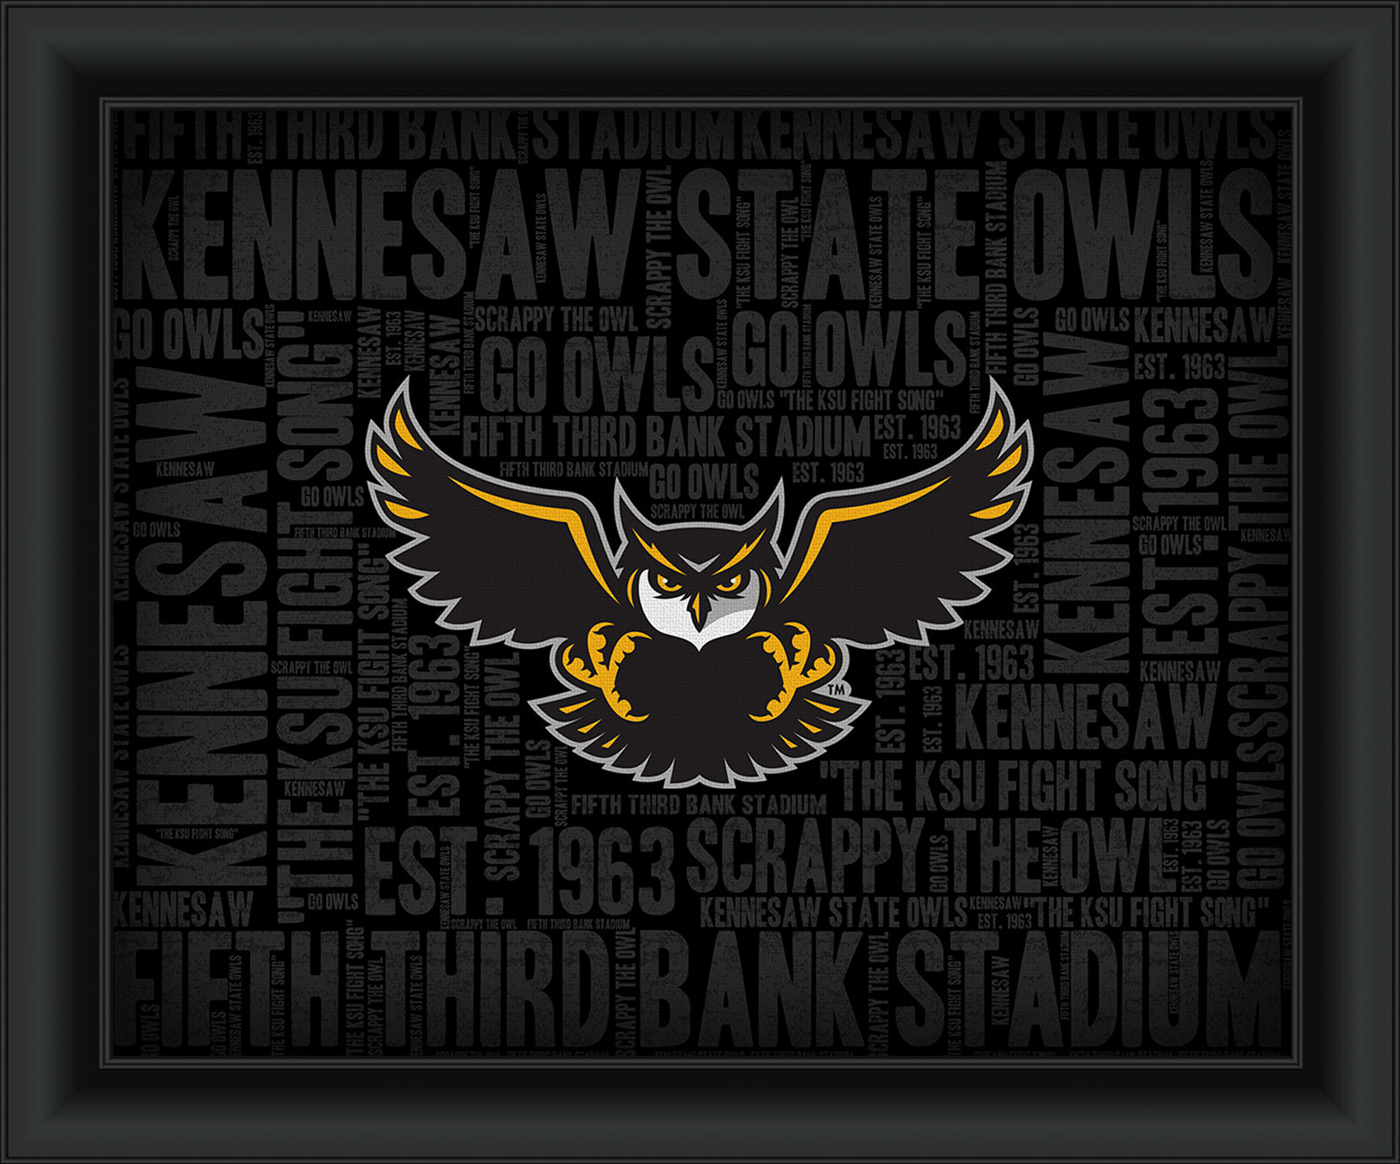 Kennesaw State Owls Gold Helmet Die-Cut Decal ** 4 Sizes |Kennesaw State